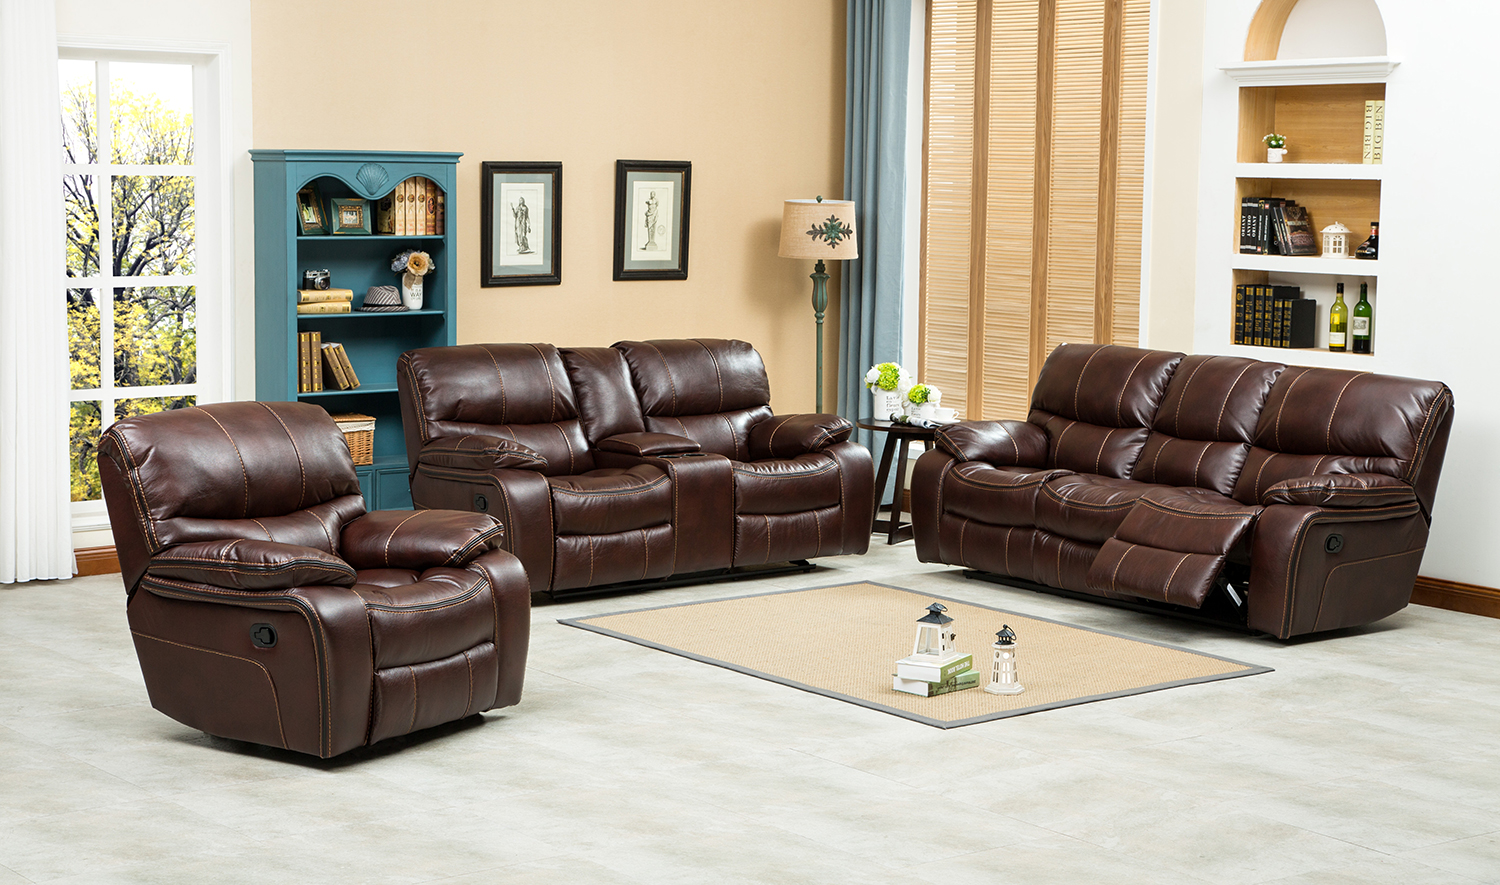 Pensylvania recliner lounge suite discount decor cheap for Living room suites for sale